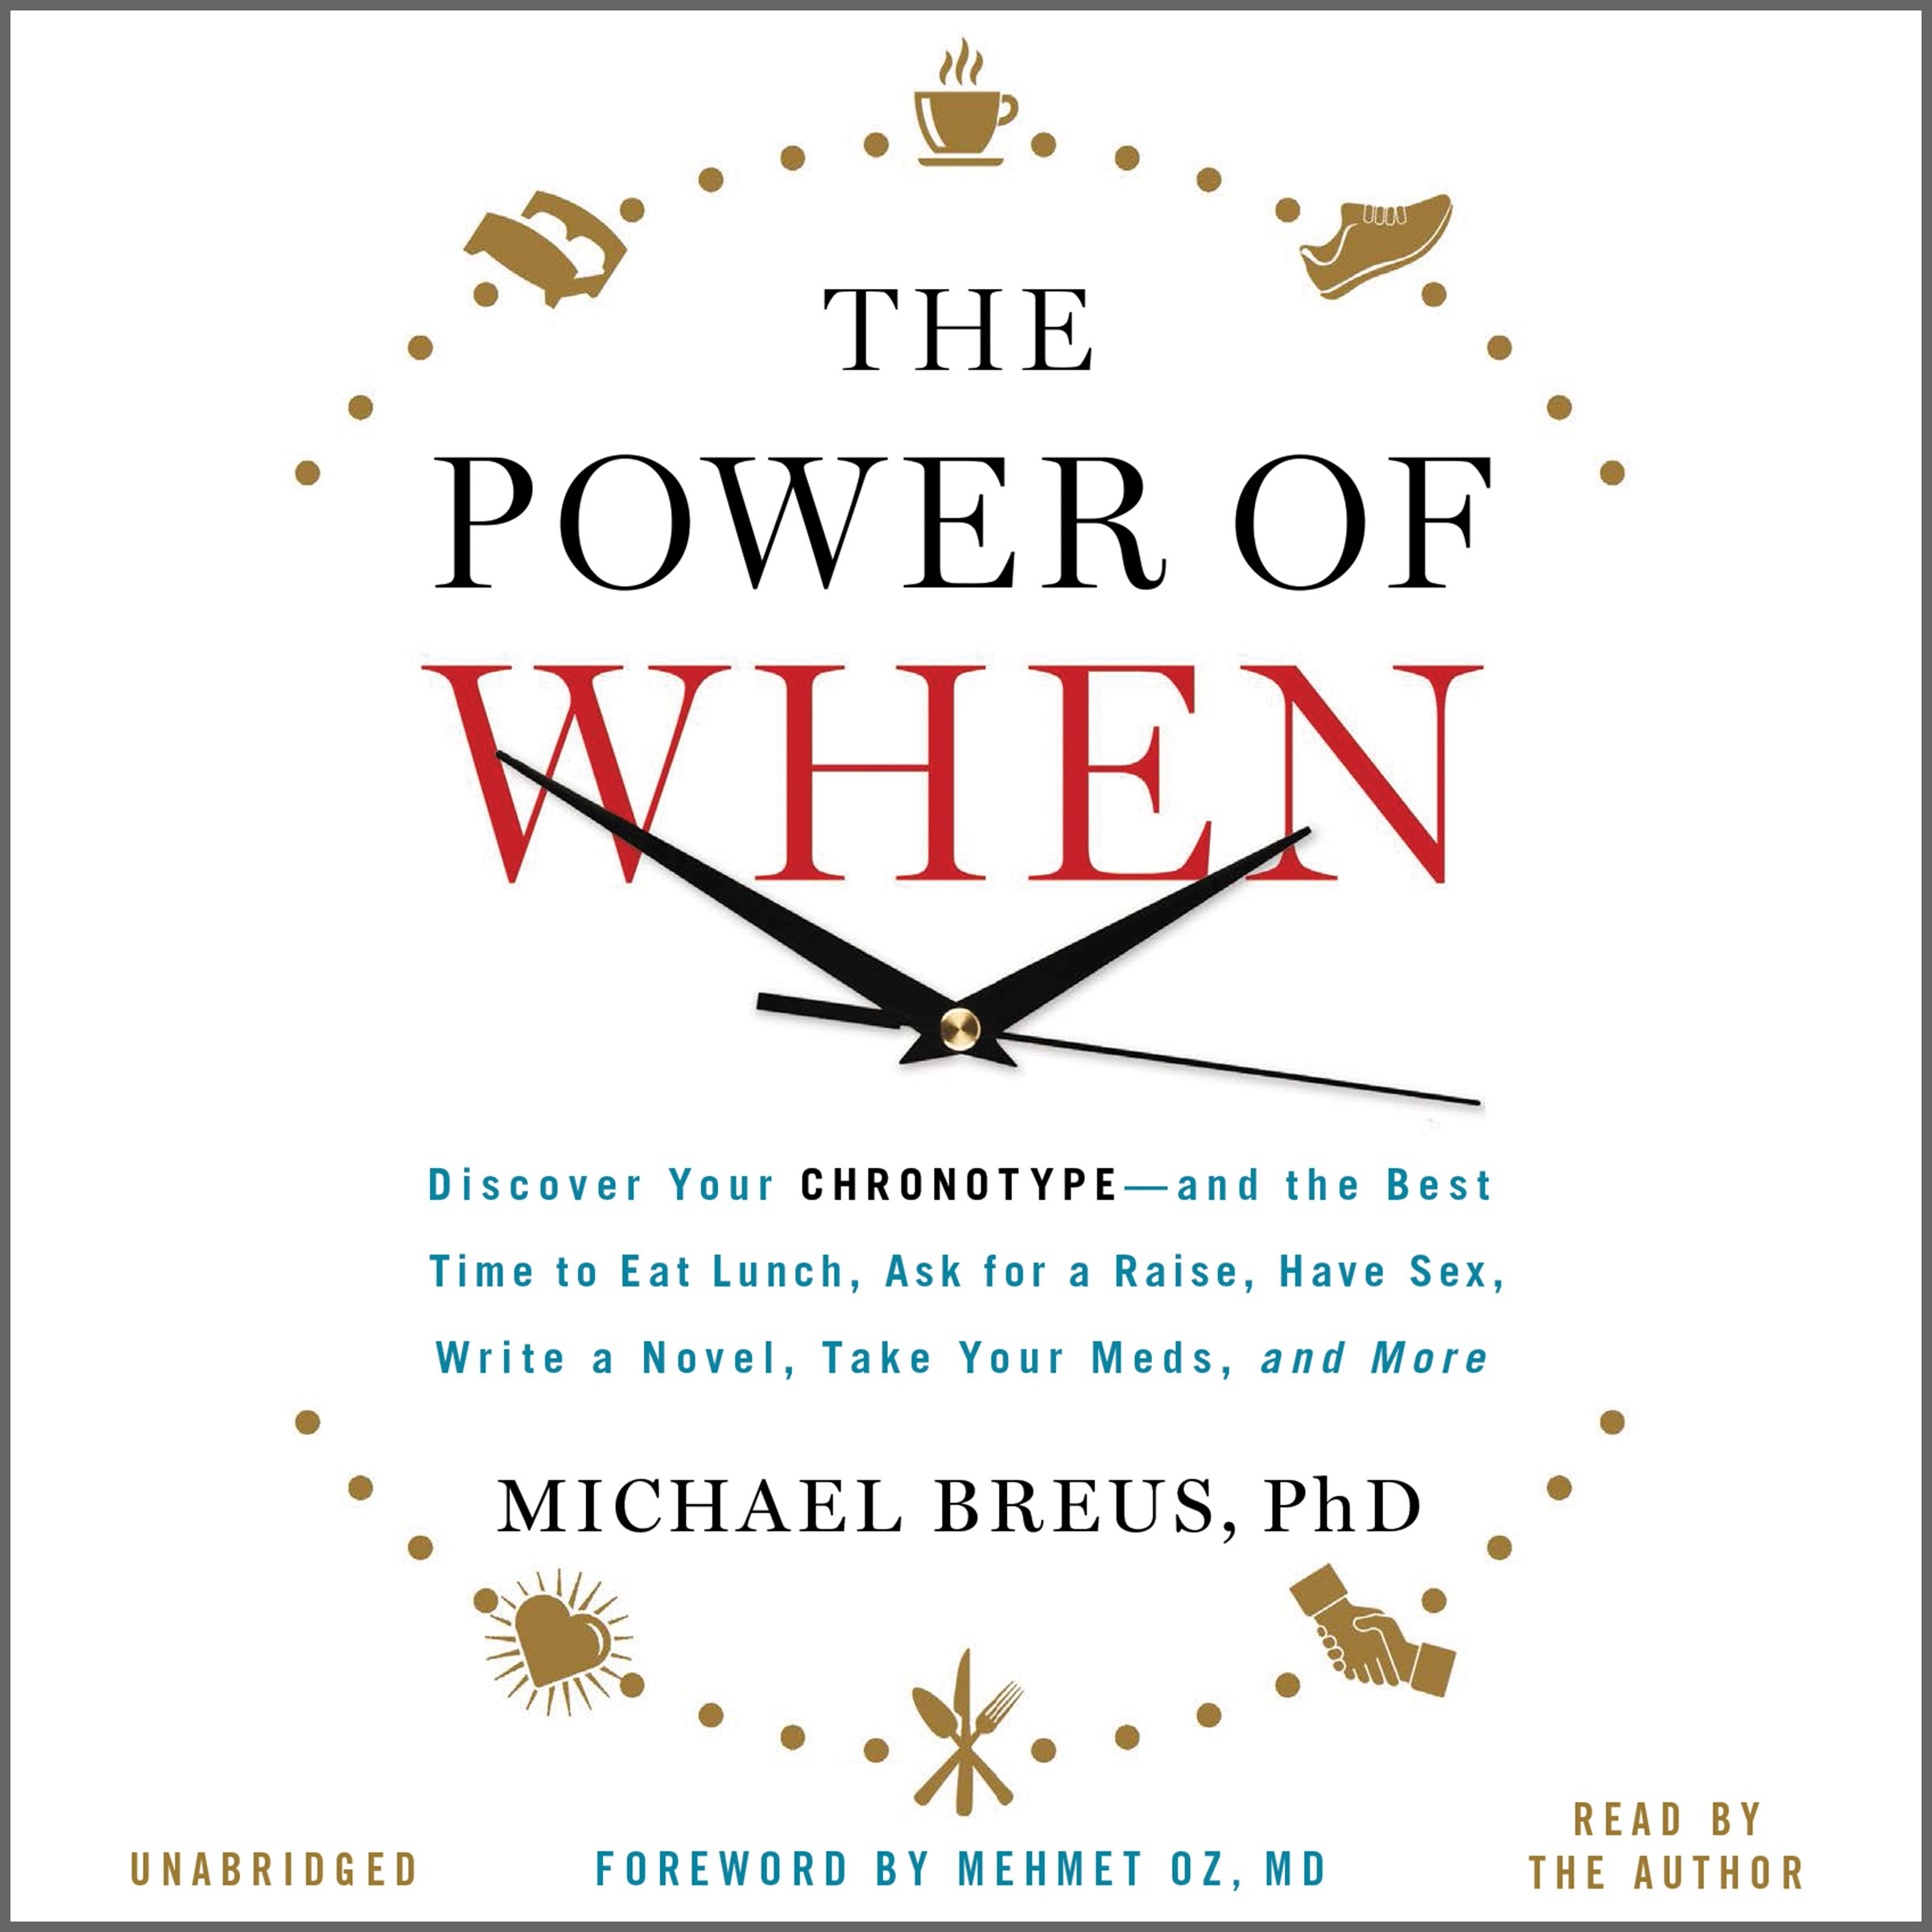 The Power of When: Discover Your Chronotype – and the Best Time to Eat Lunch, Ask for a Raise, Have Sex, Write a Novel, Take Your Meds, and More